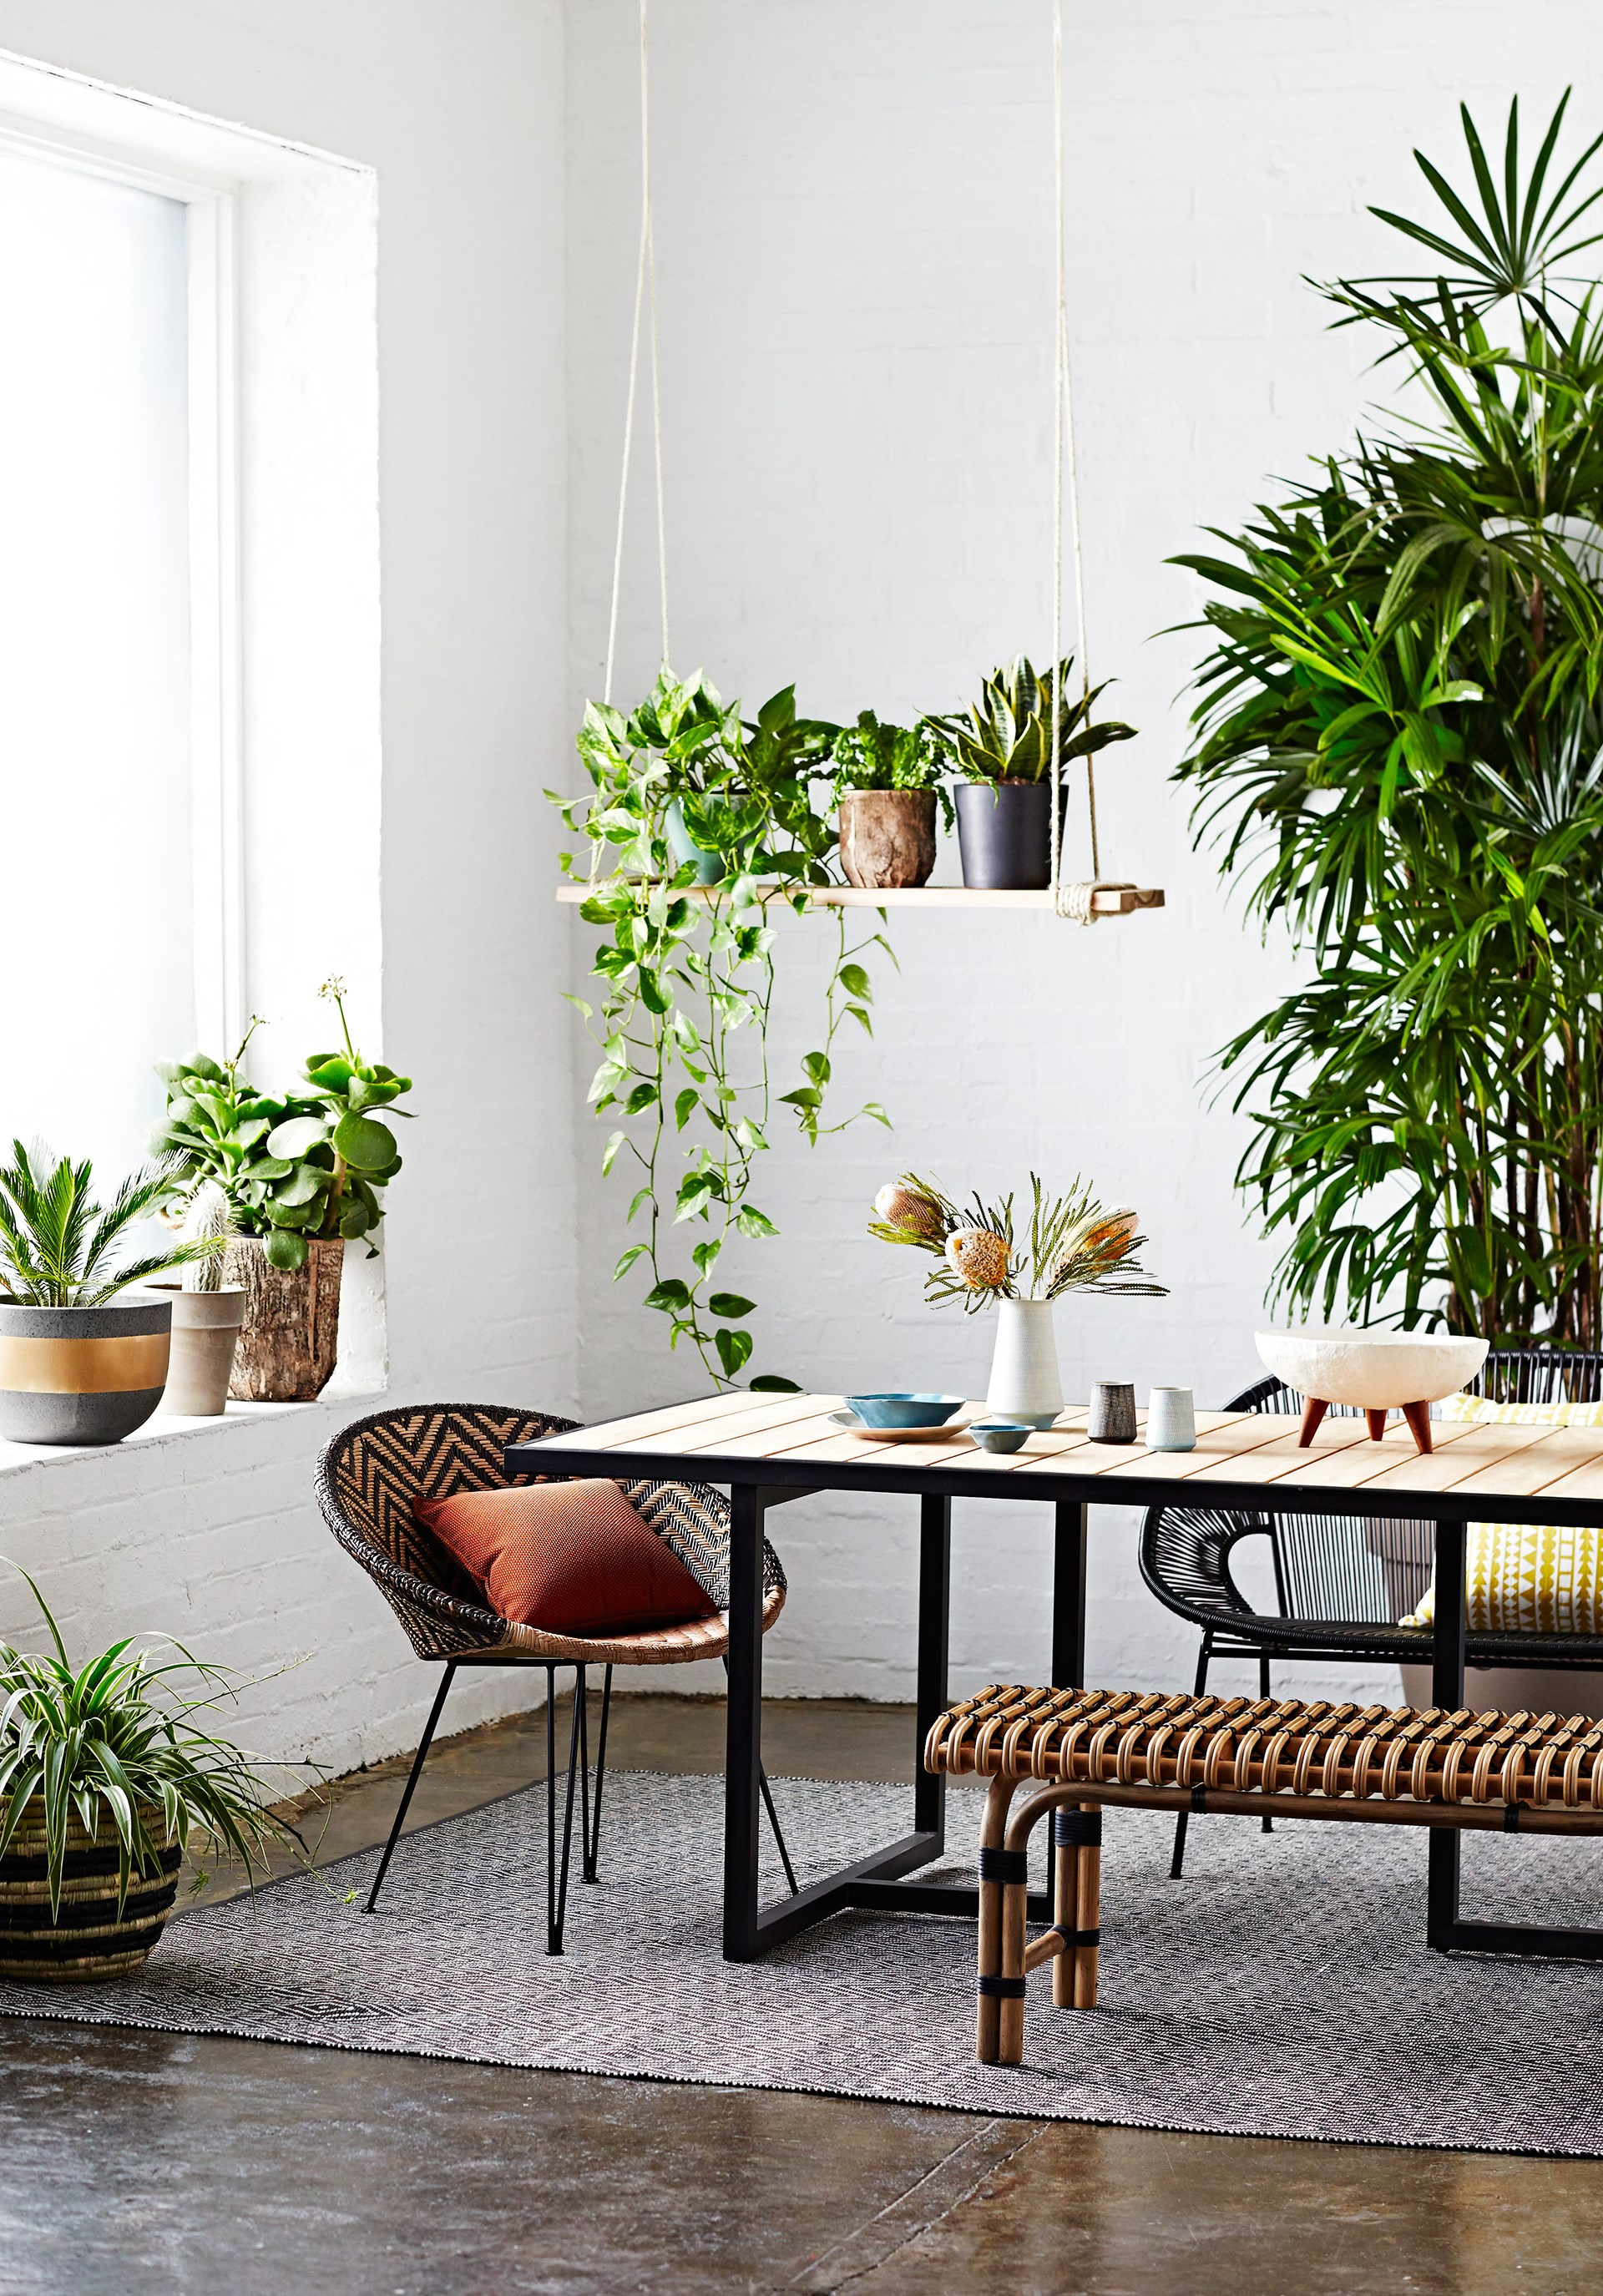 Don't be afraid to bring your garden indoors. Photo: Mike Baker / Australian House & Garden